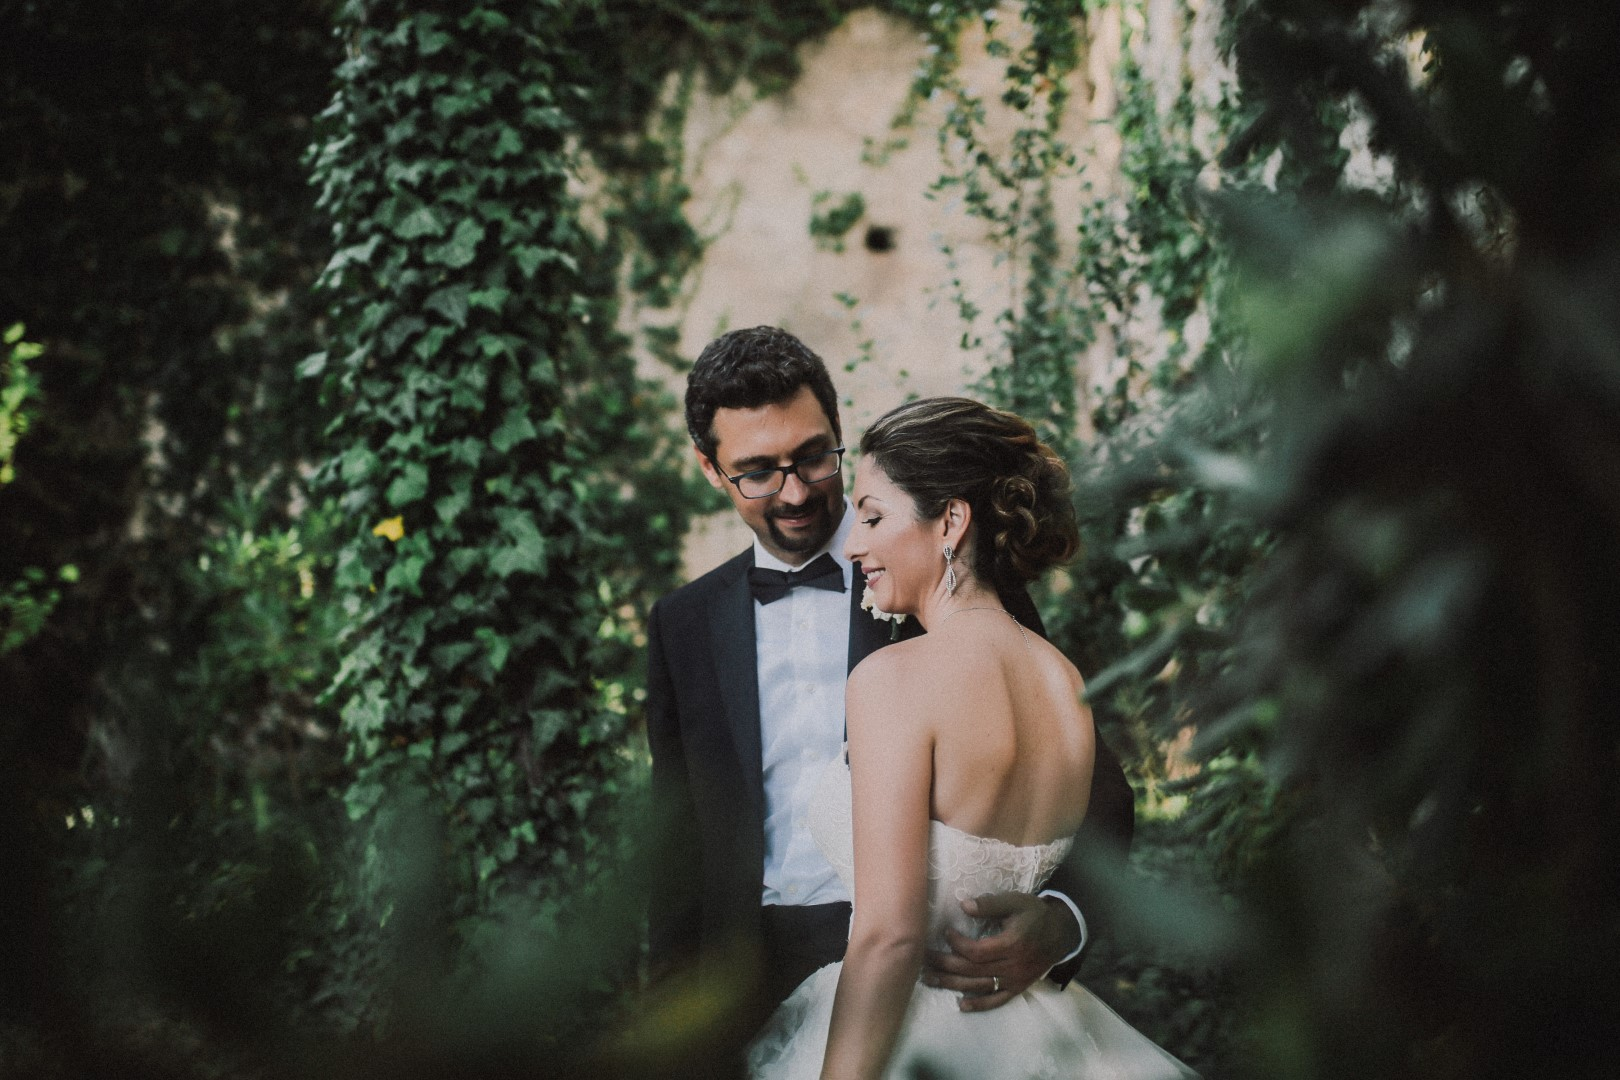 This is a photo from the photosession of the happy couple. They are in a garden. The groom is giving her a hug. She has a beautiful updo.